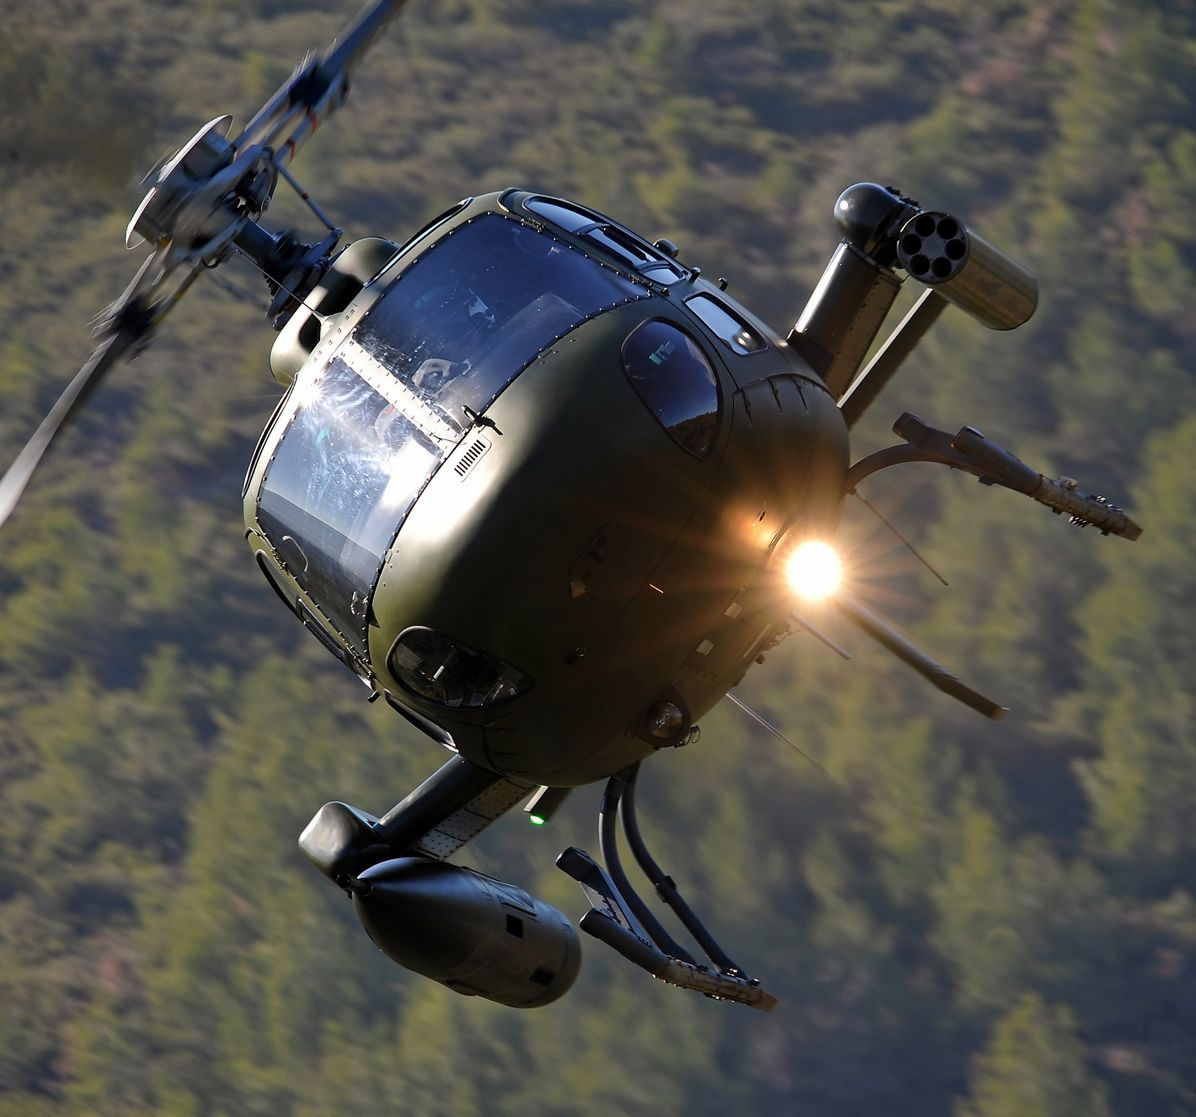 H125M with HForce